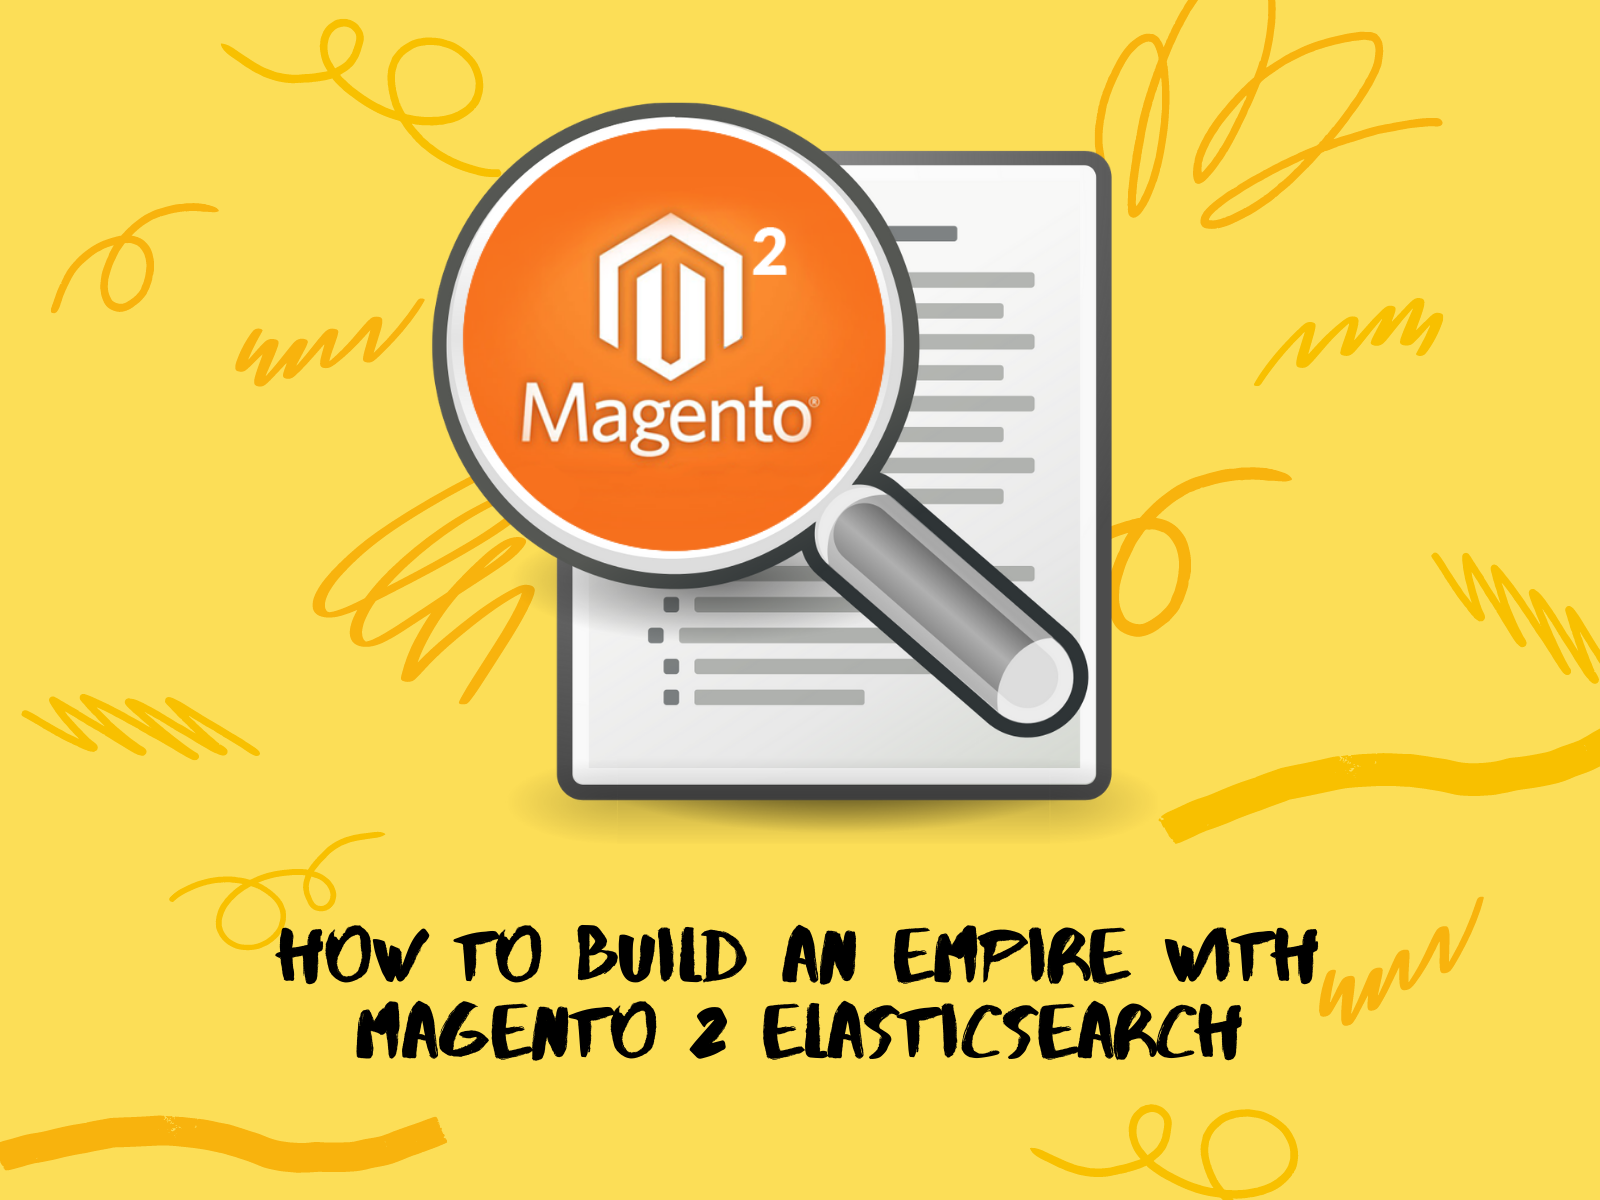 How to Build an Empire with Magento 2 Elasticsearch